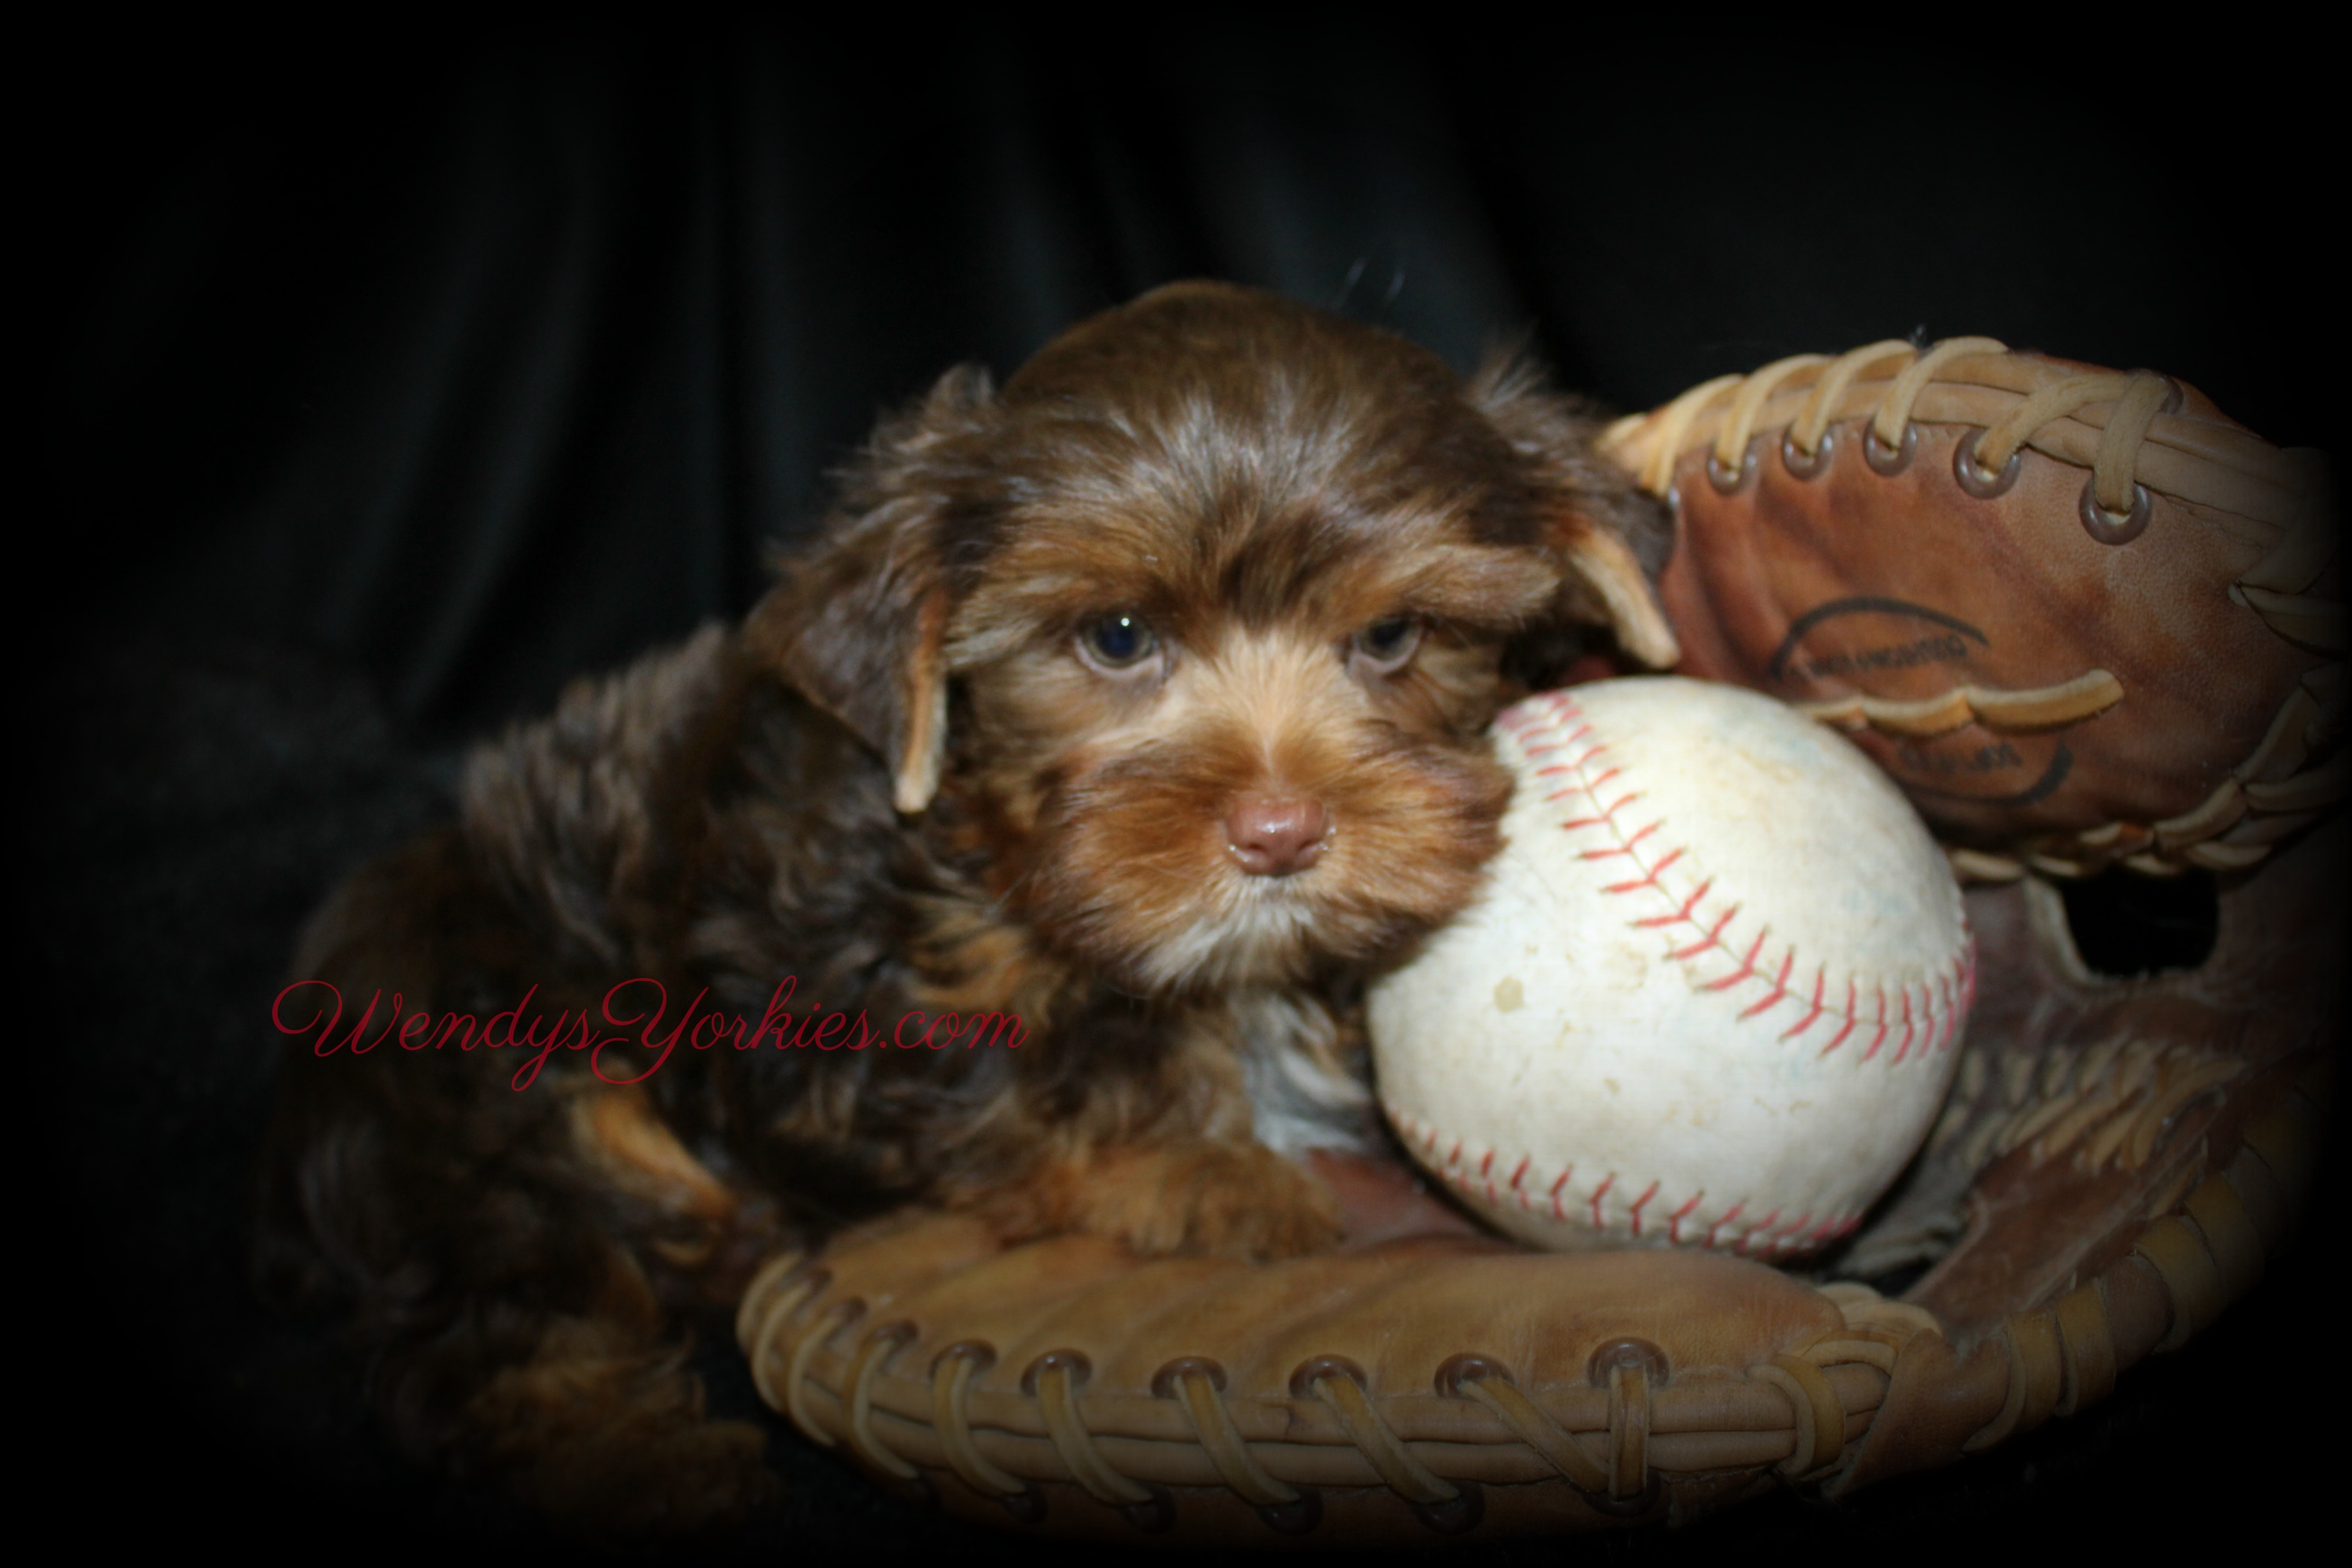 Chocolate Yorkie puppy for sale, Dixie cm1, WendysYorkies.com